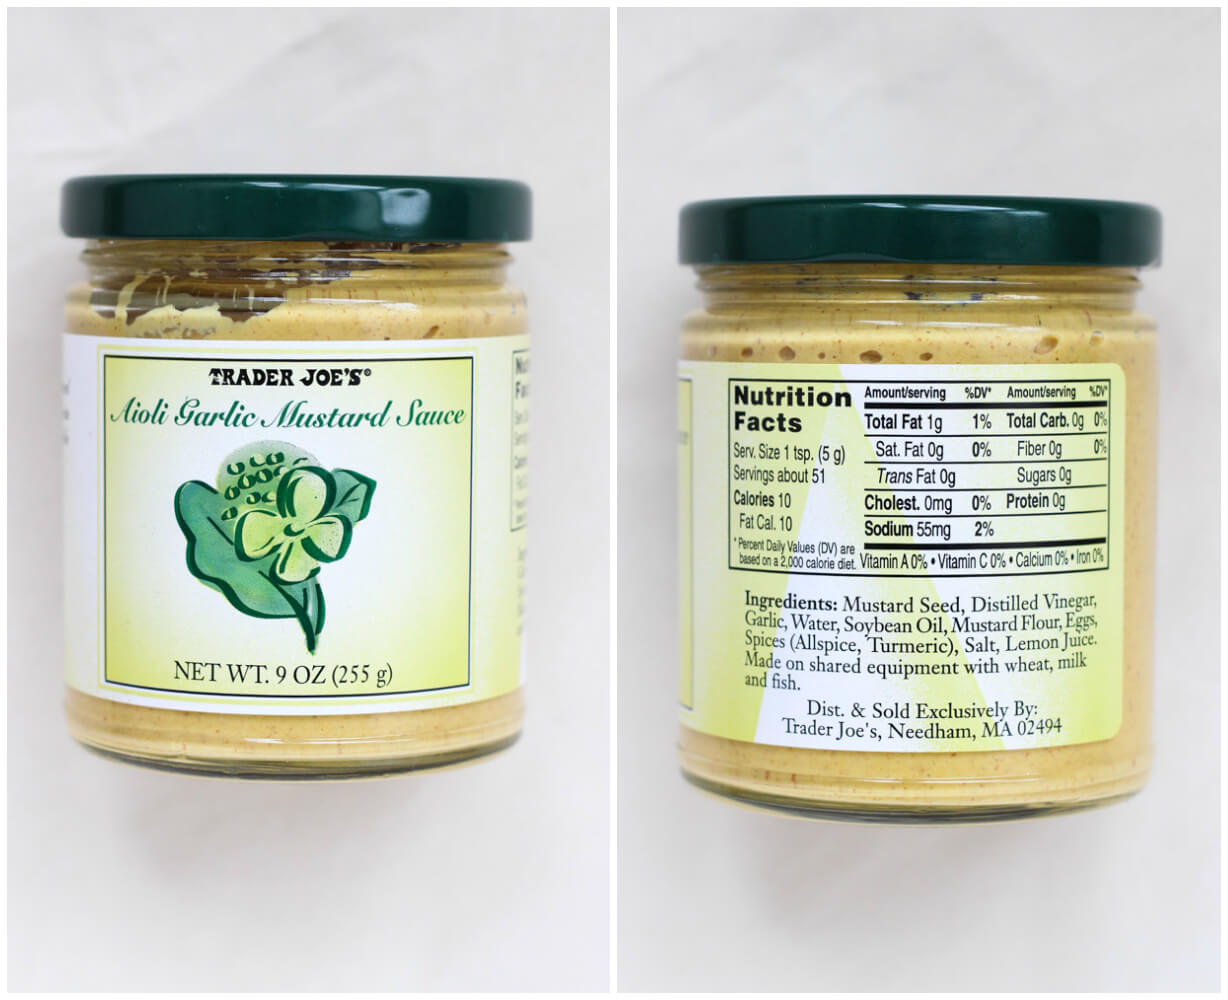 List of BEST products to buy at Trader Joe's - Aioli Garlic Mustard Sauce | littlebroken.com @littlebroken